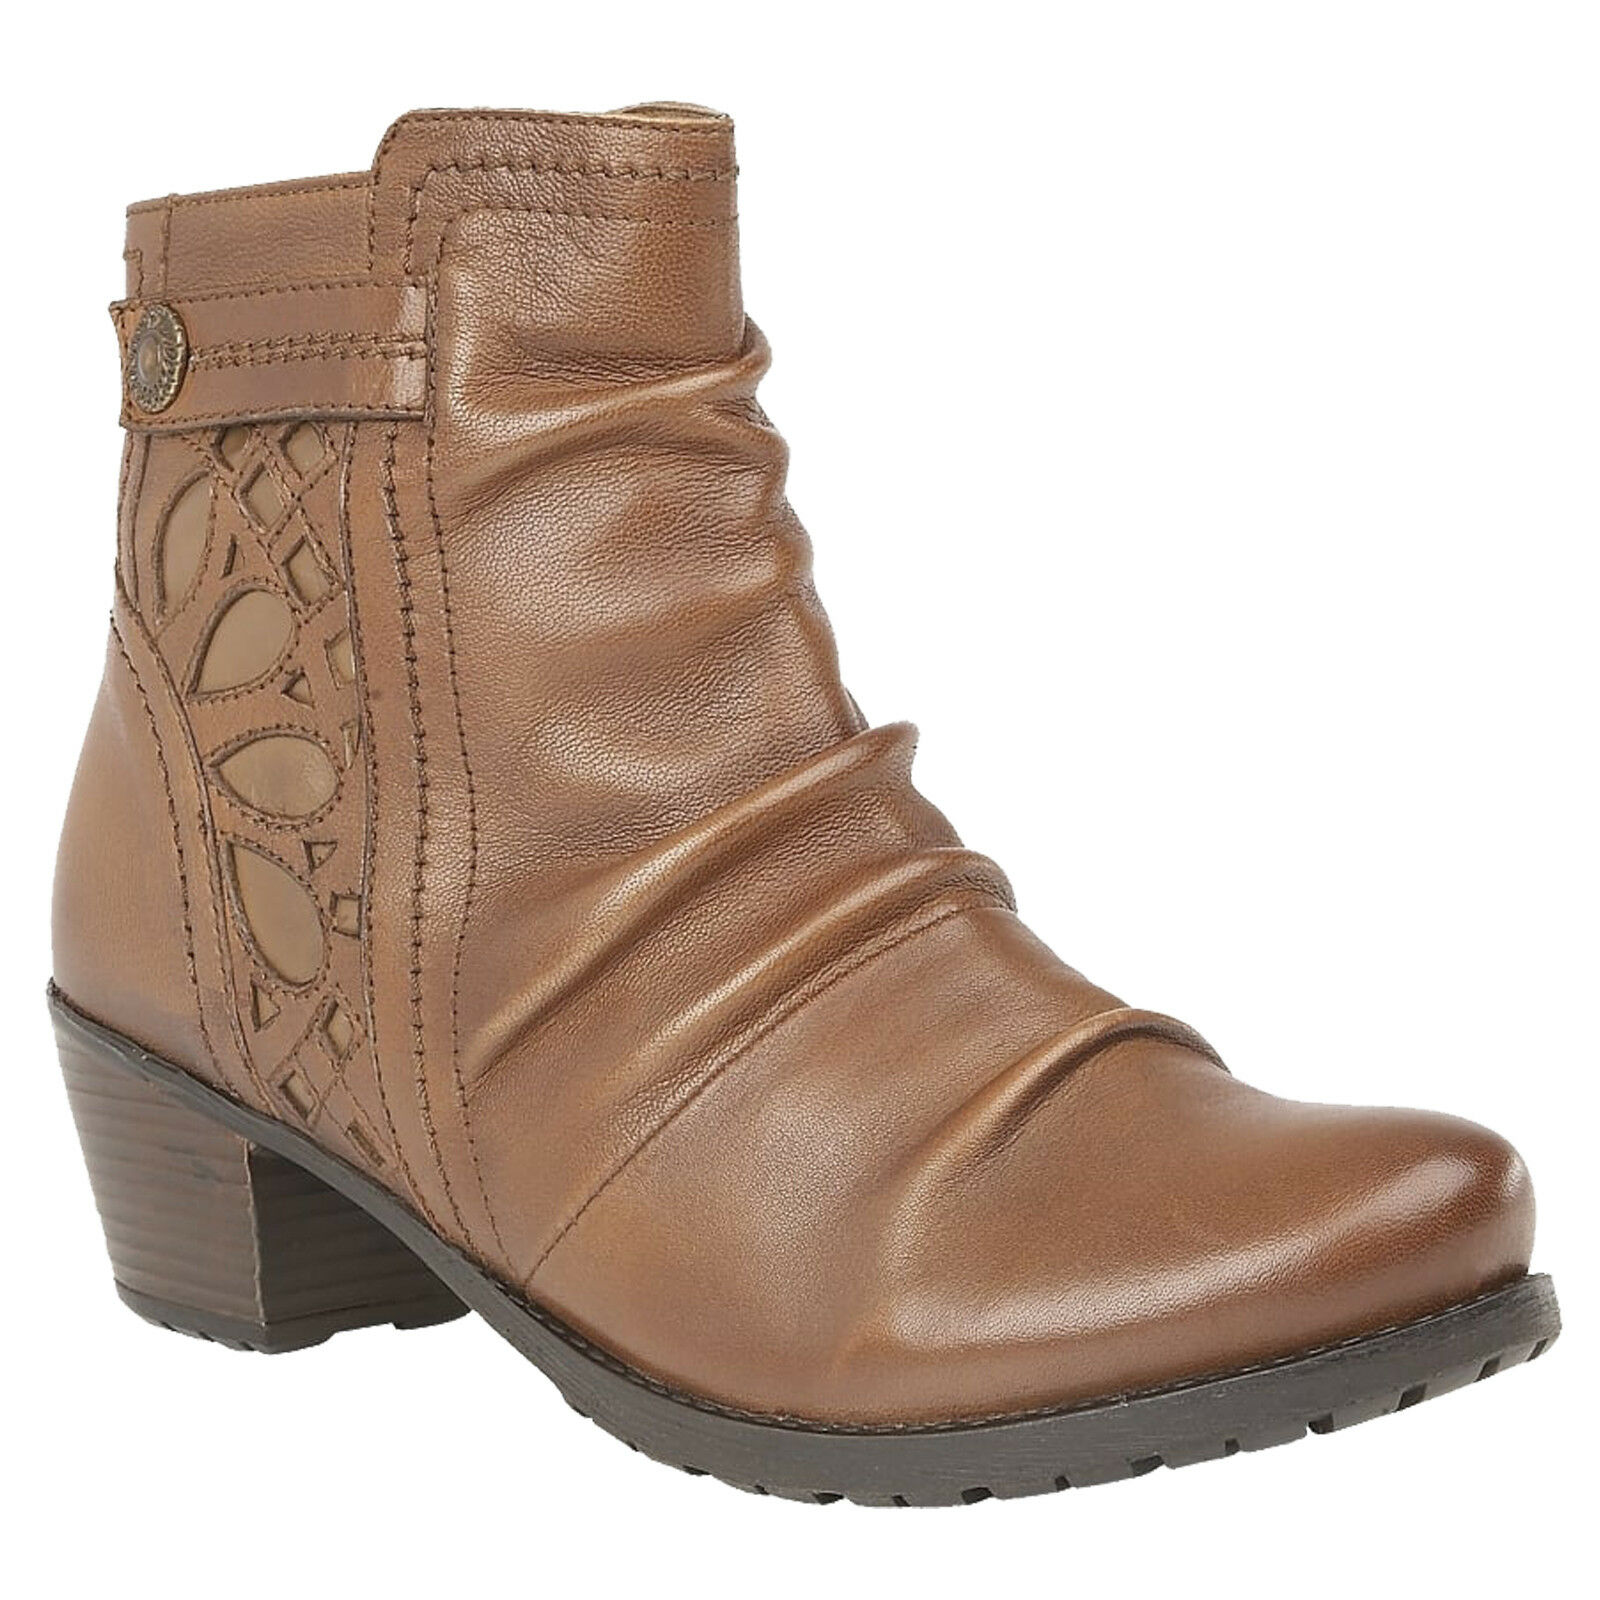 LADIES LOTUS LOTUS LOTUS MAPLES TAN LEATHER RUCHED ANKLE BOOTS b90200